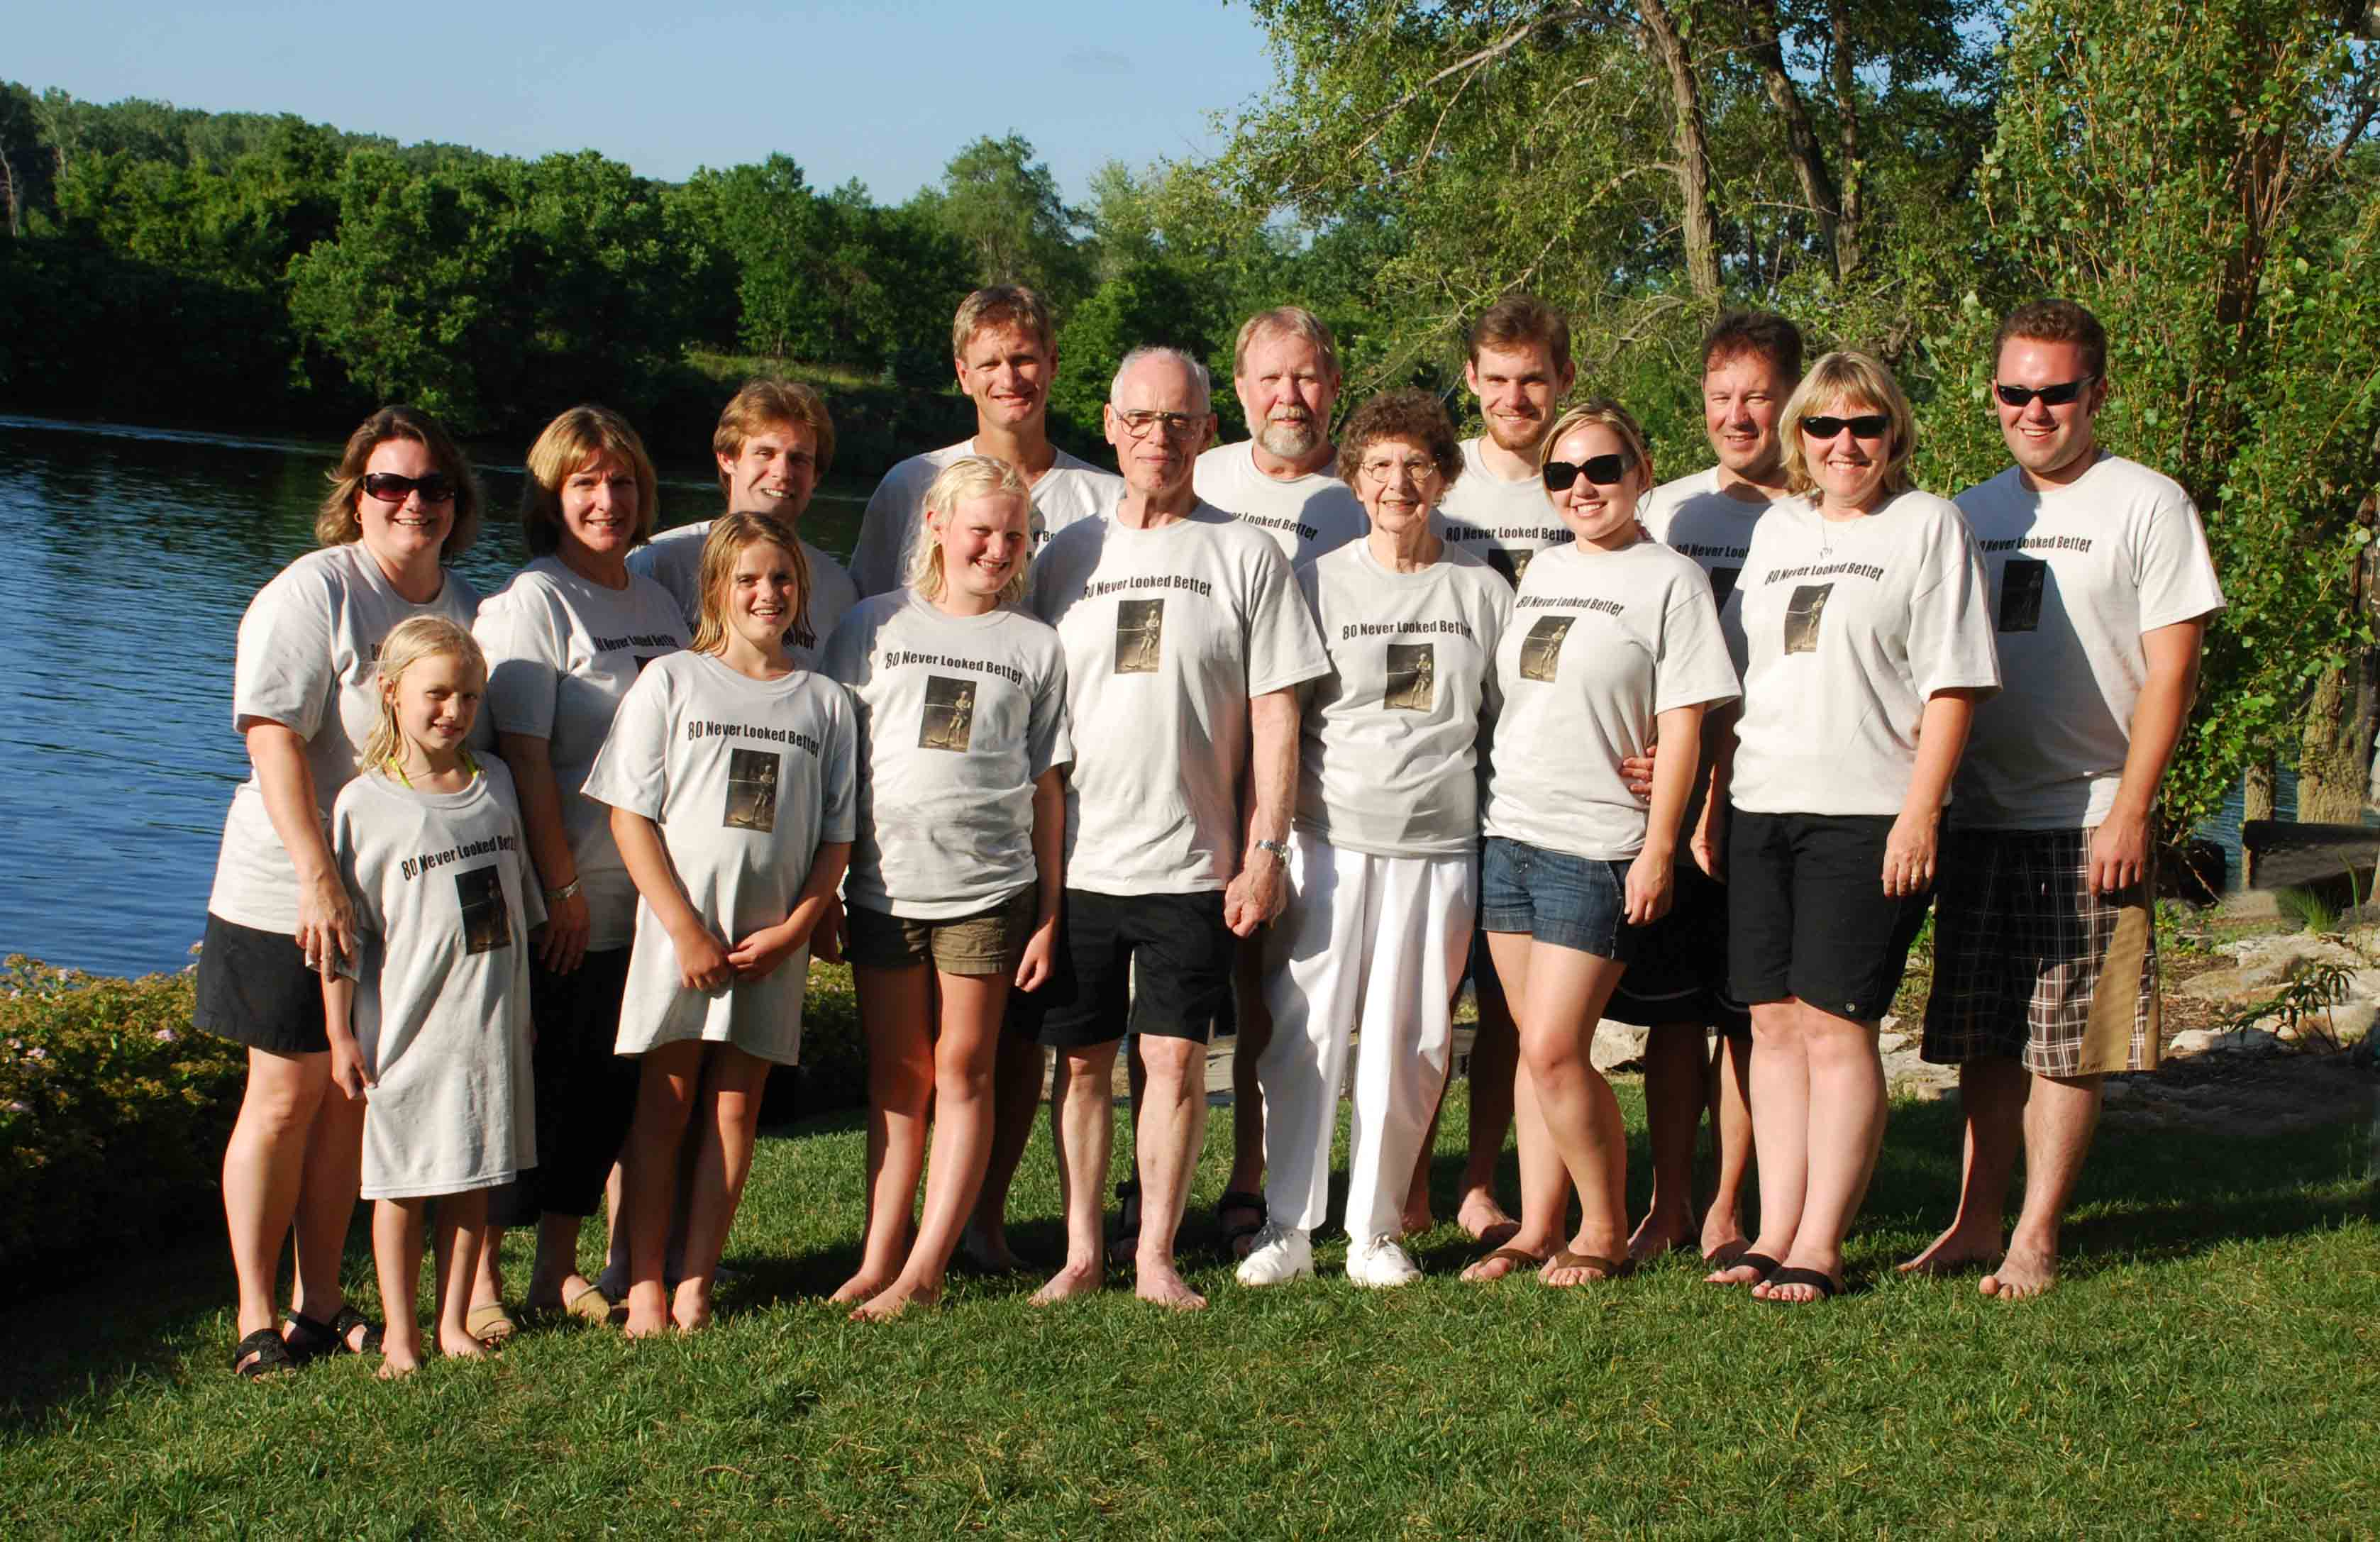 Bobs 80th Birthday T Shirt Photo